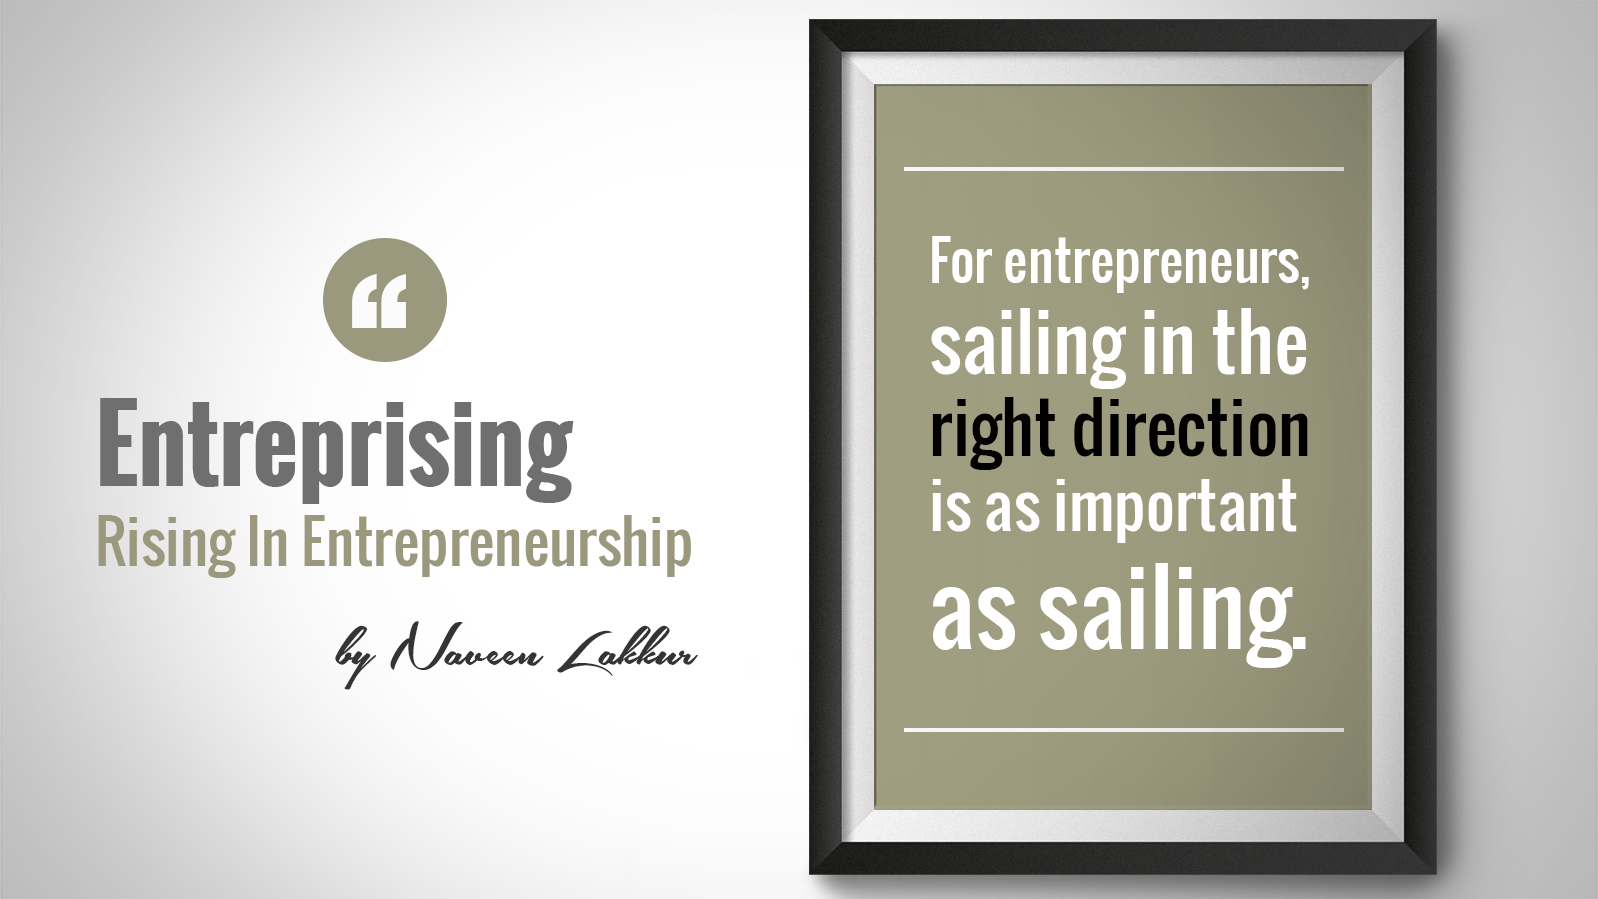 ENTREPRENEURS SAIL IN THE RIGHT DIRECTION